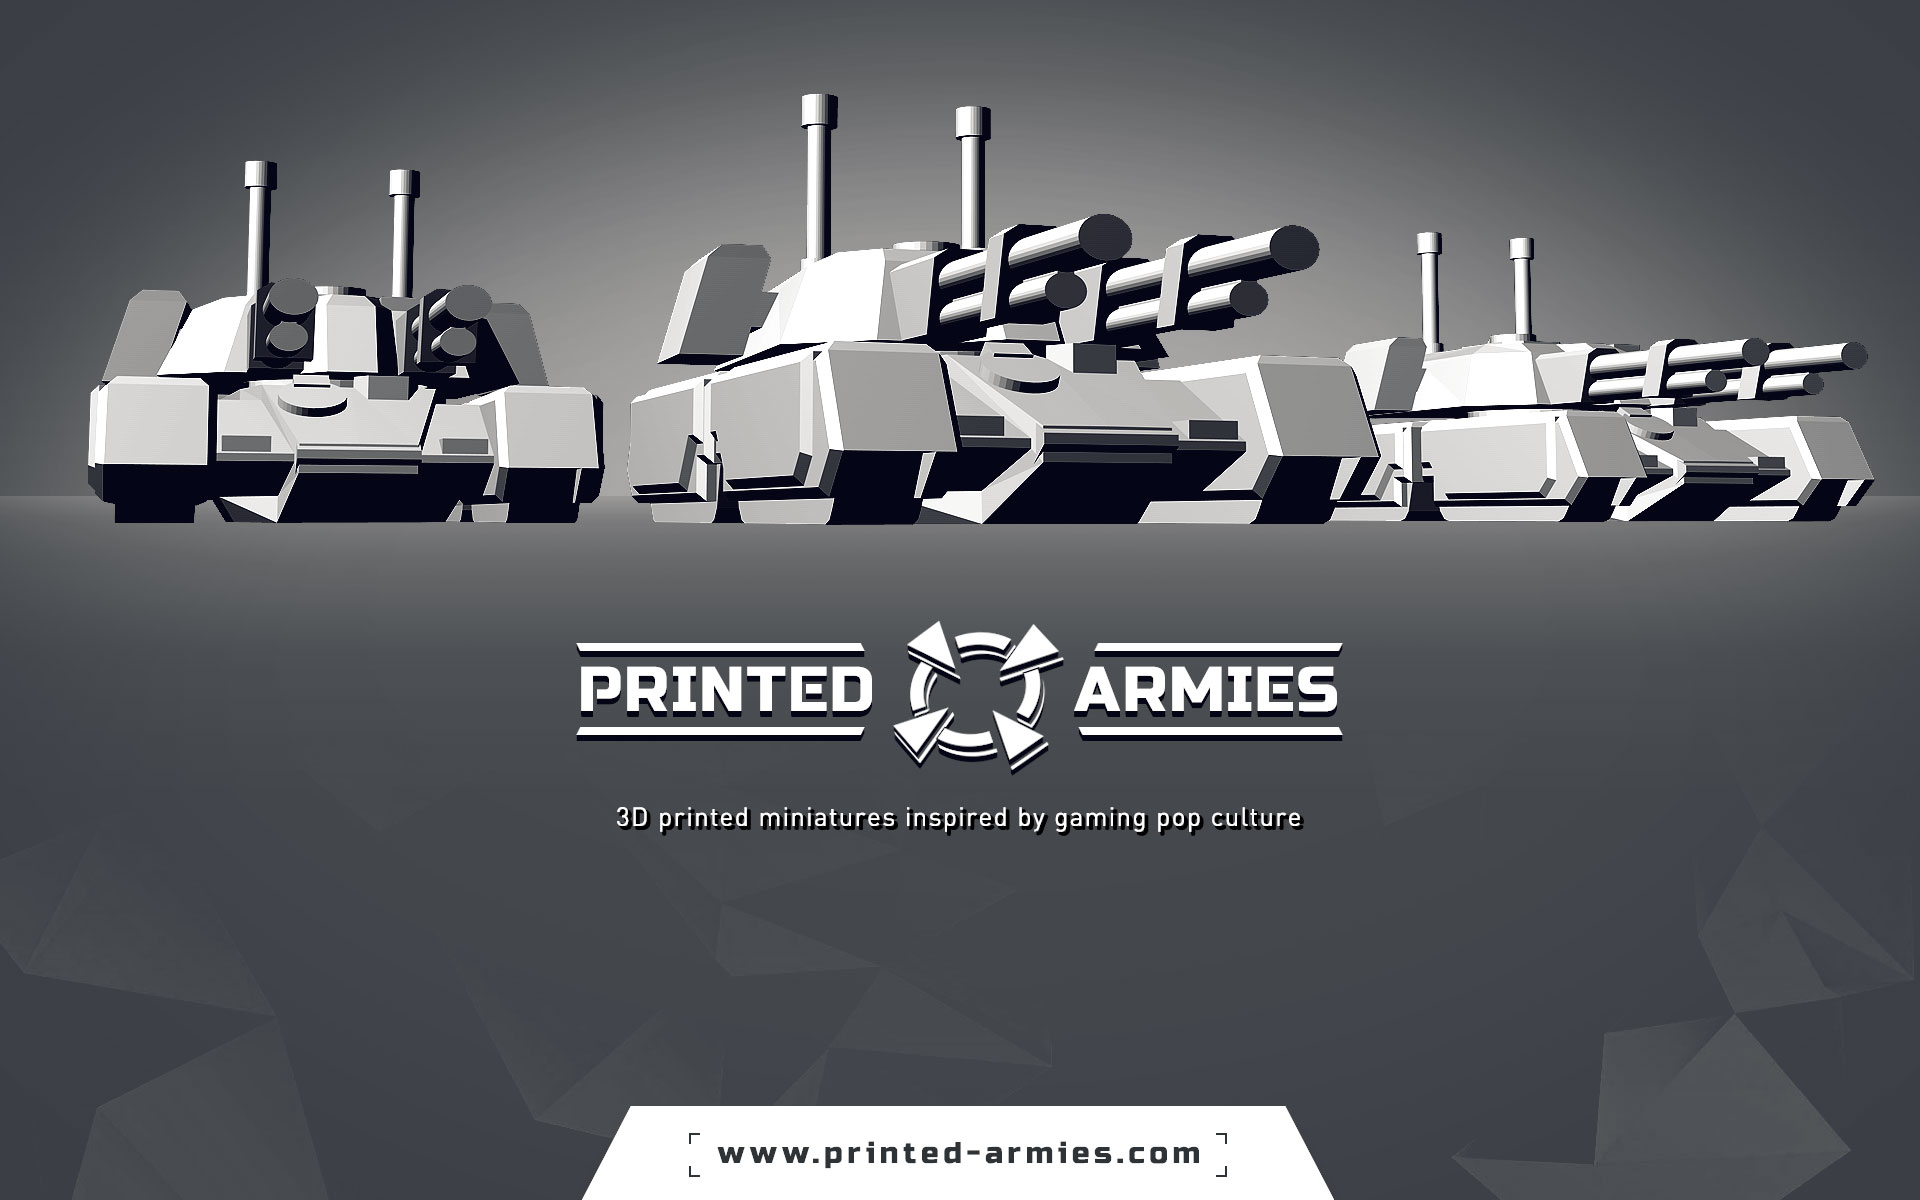 printed-armies-wallpaper04